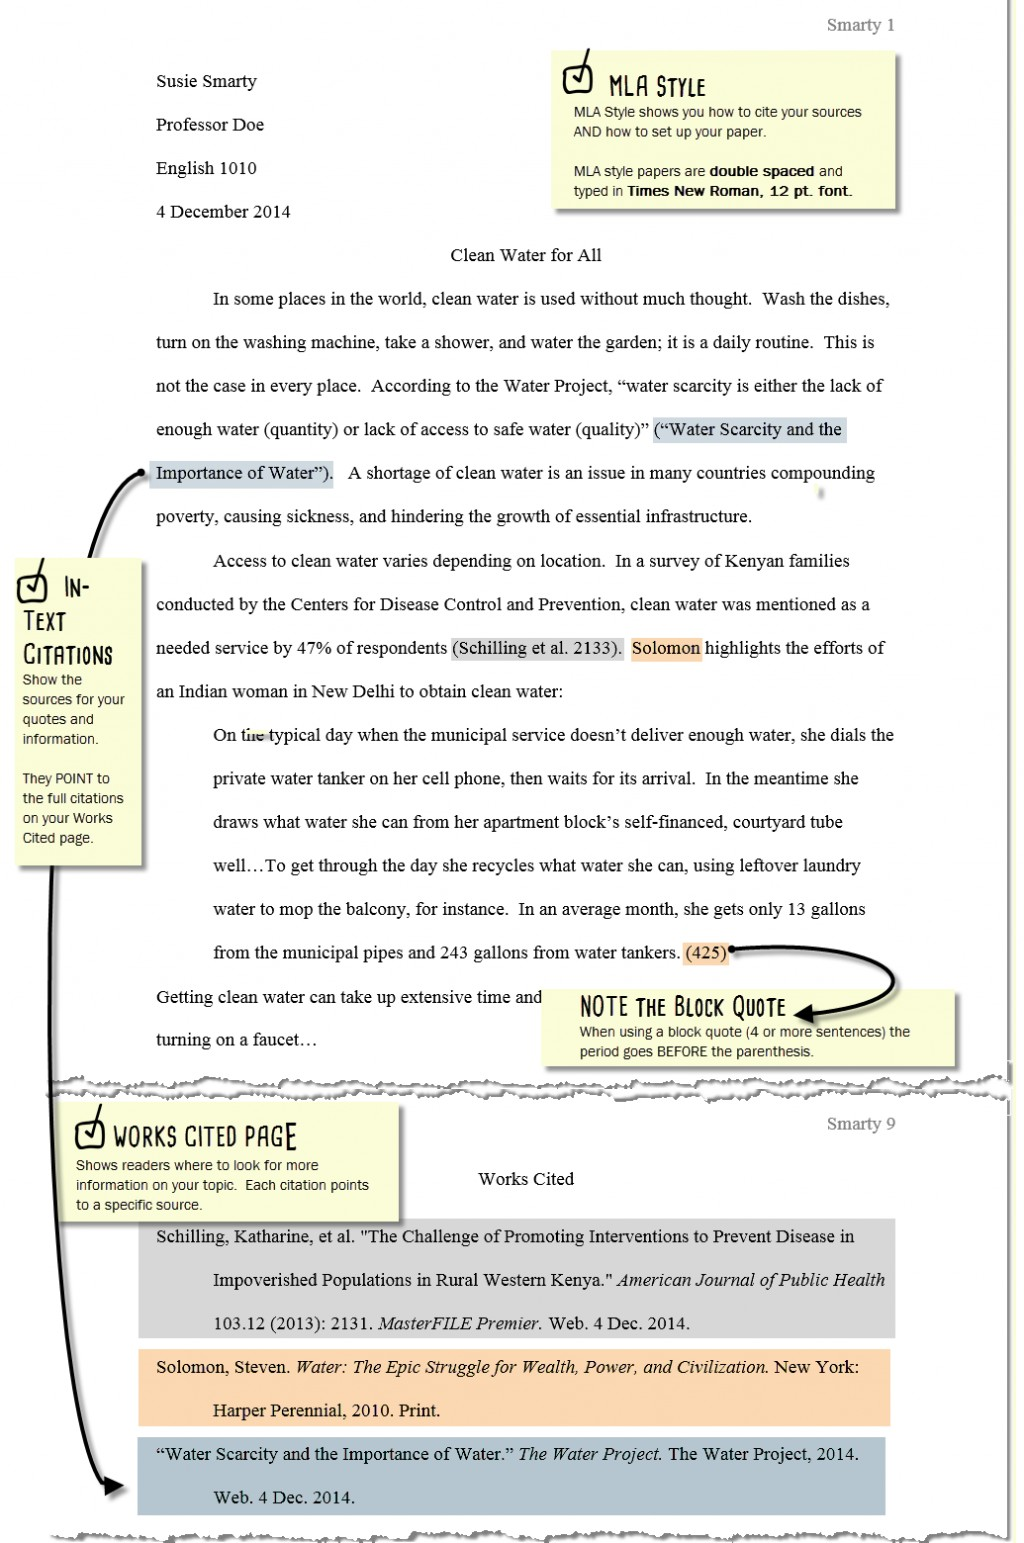 006 How To Cite In An Essay Mla Example Sample Paper Updated Blues Sw Archaicawful Sources Websites Movies A Large